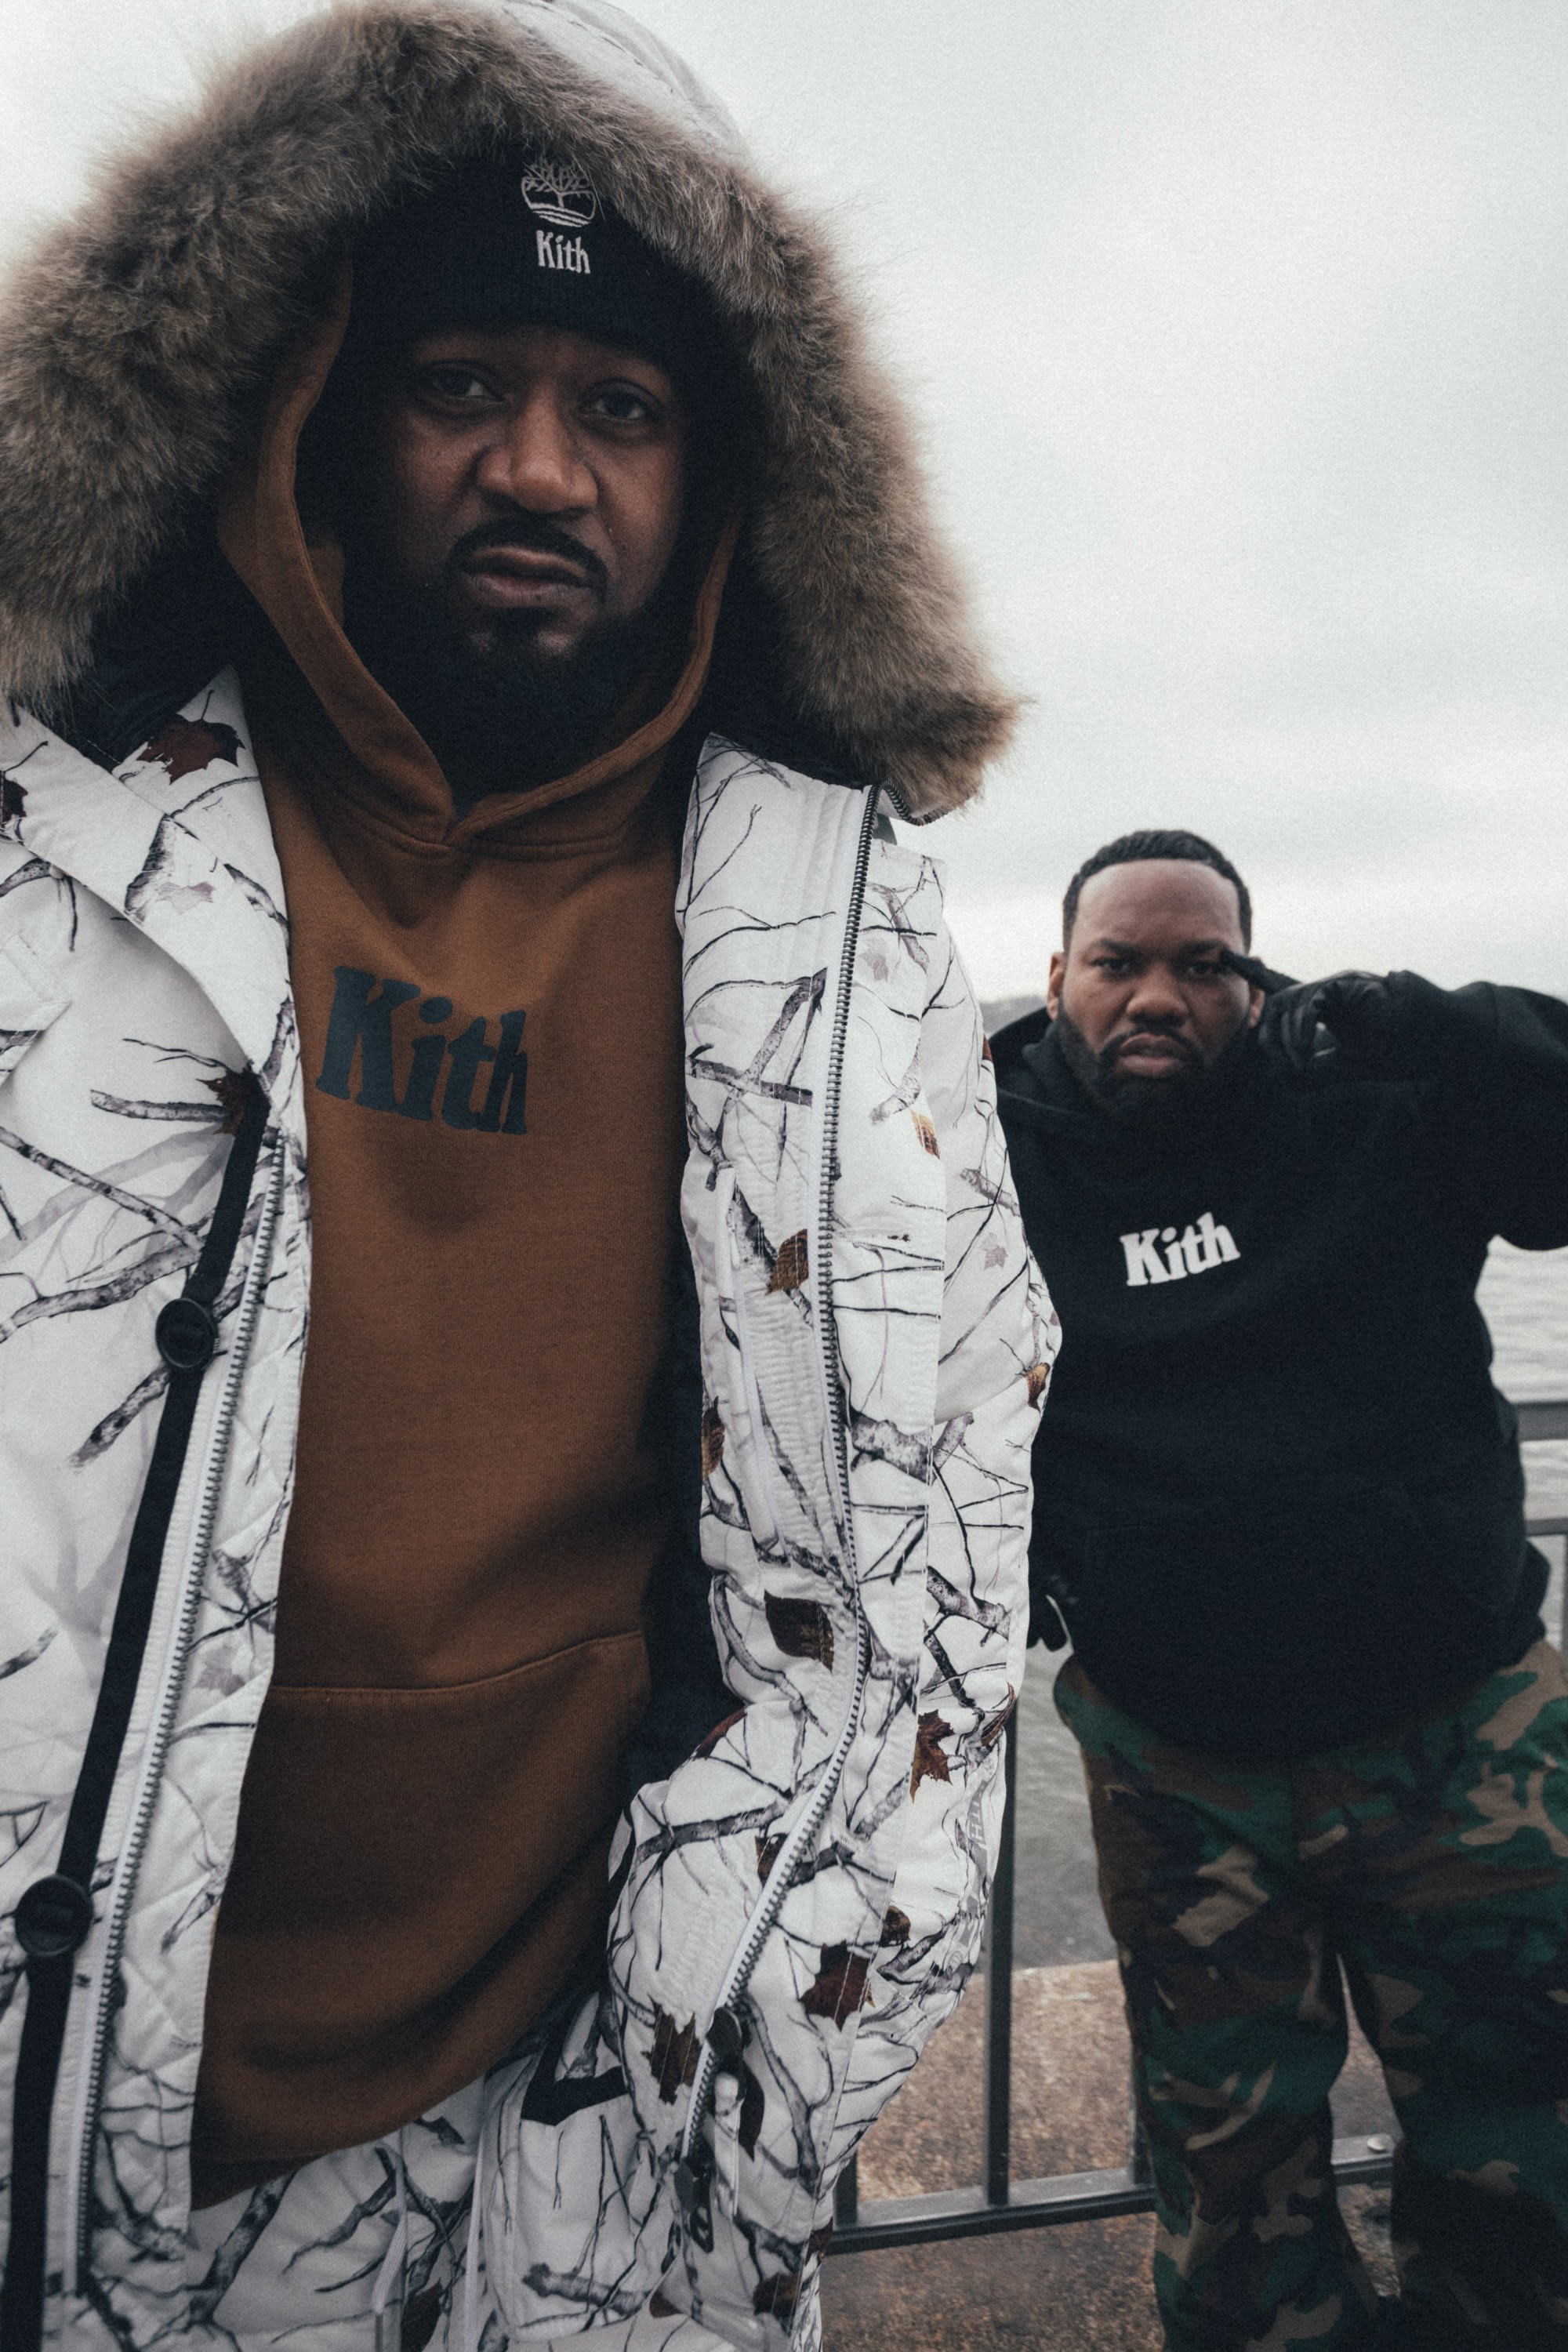 Kith x Timberland Lookbook 4